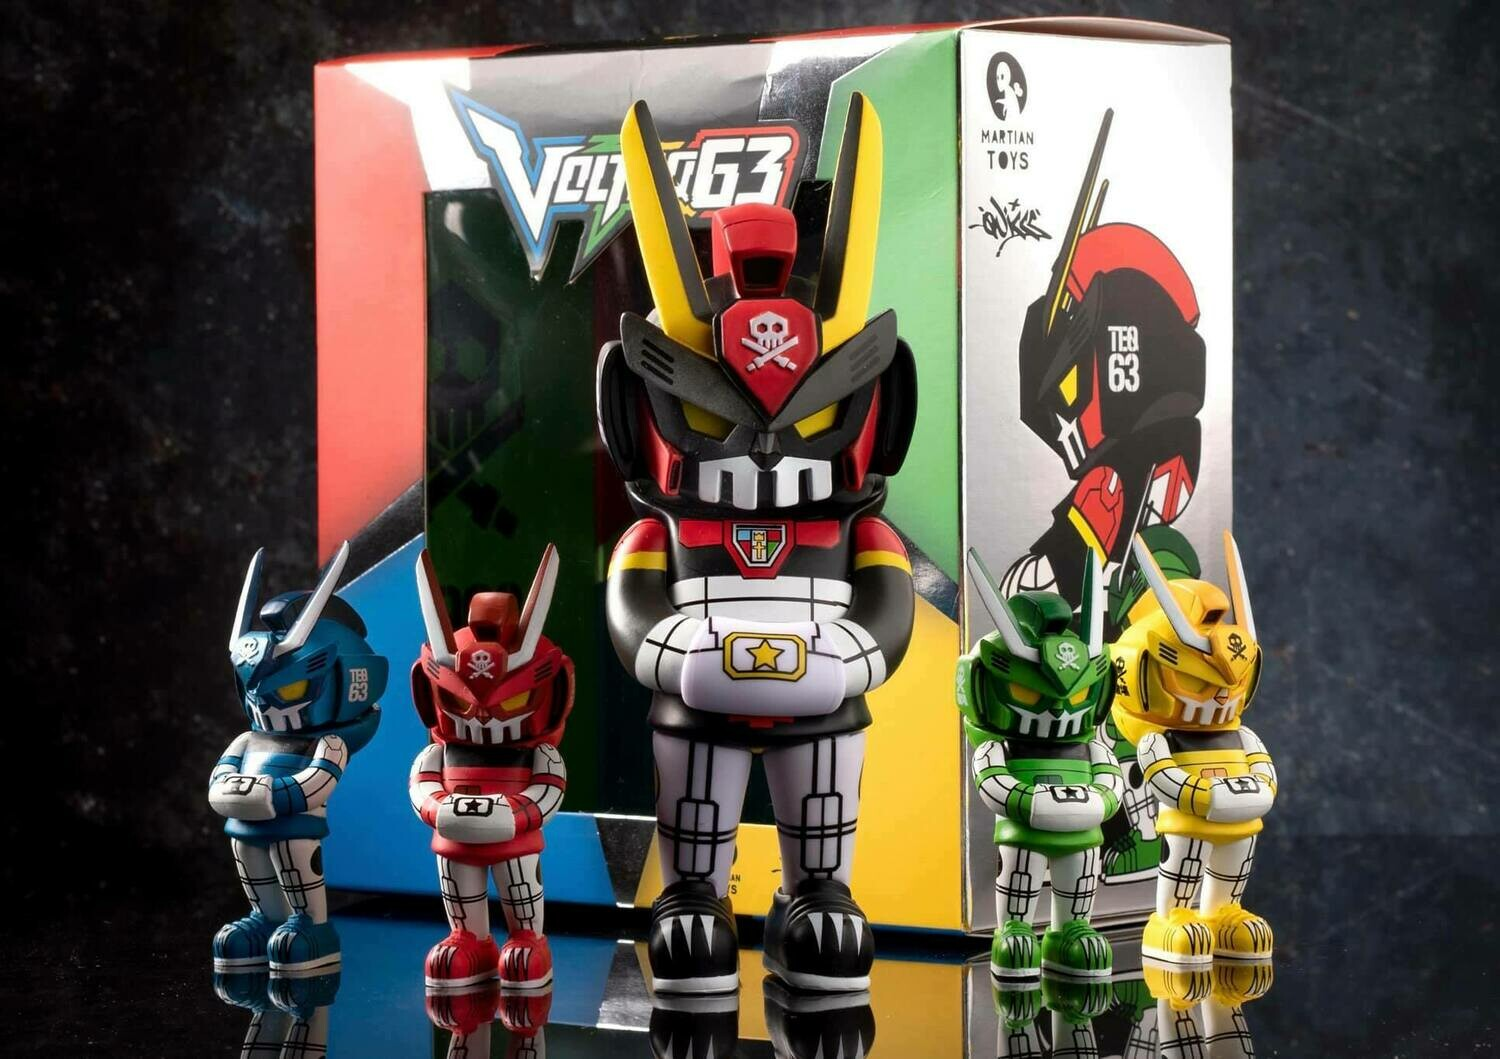 VolTeq63 Tigers Mode MicroTeq Set by Quiccs x Martian Toys